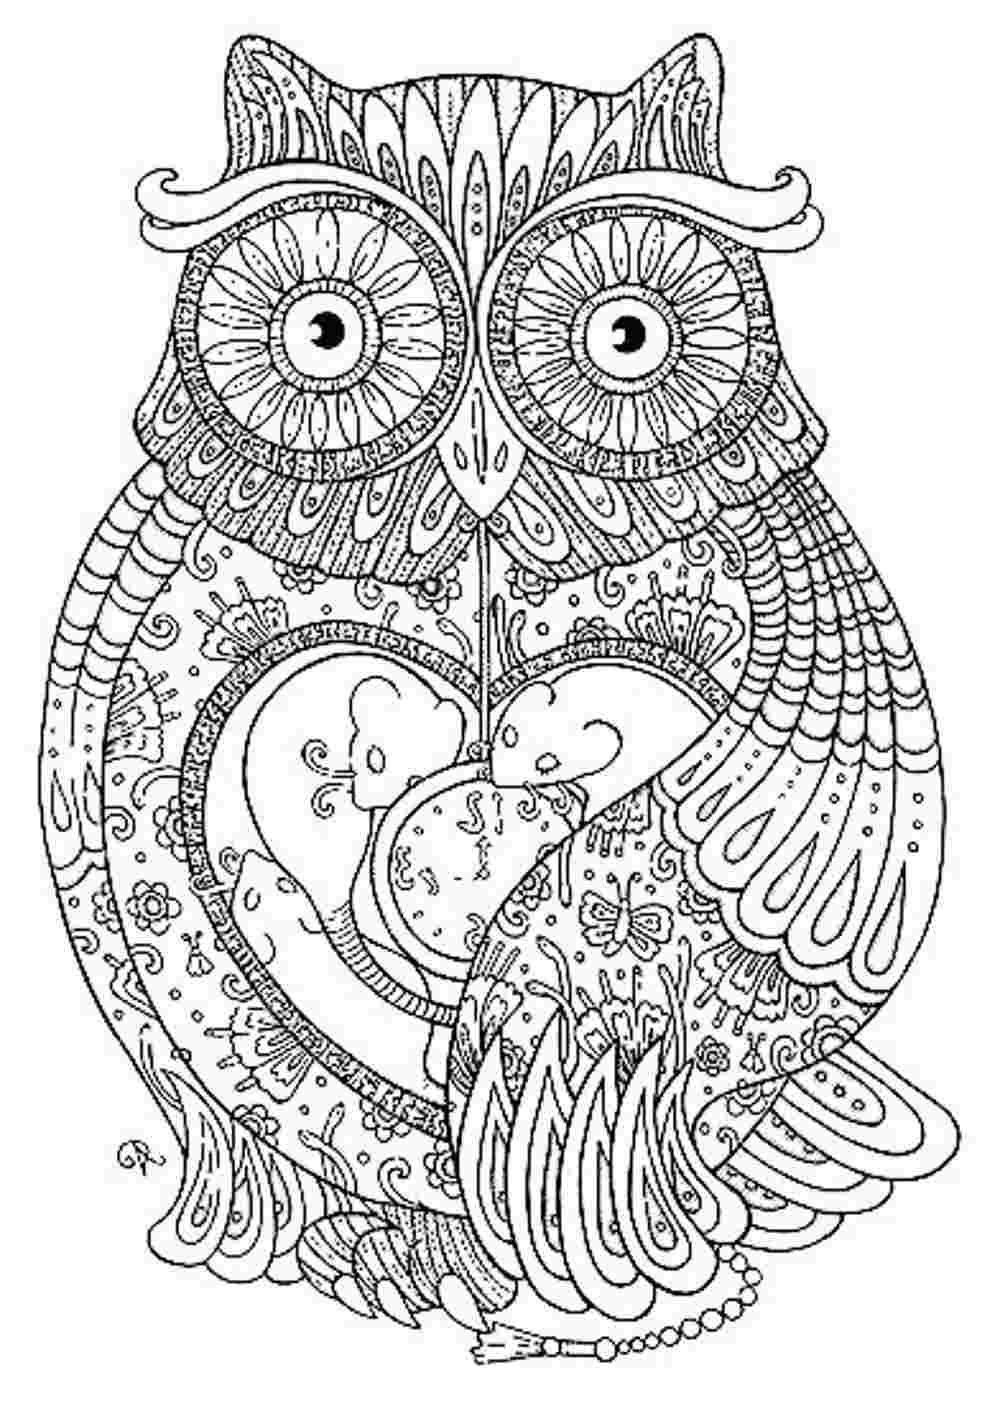 1000x1403 Awesome And Beautiful Owl Coloring Pages For Adults Printable Kids